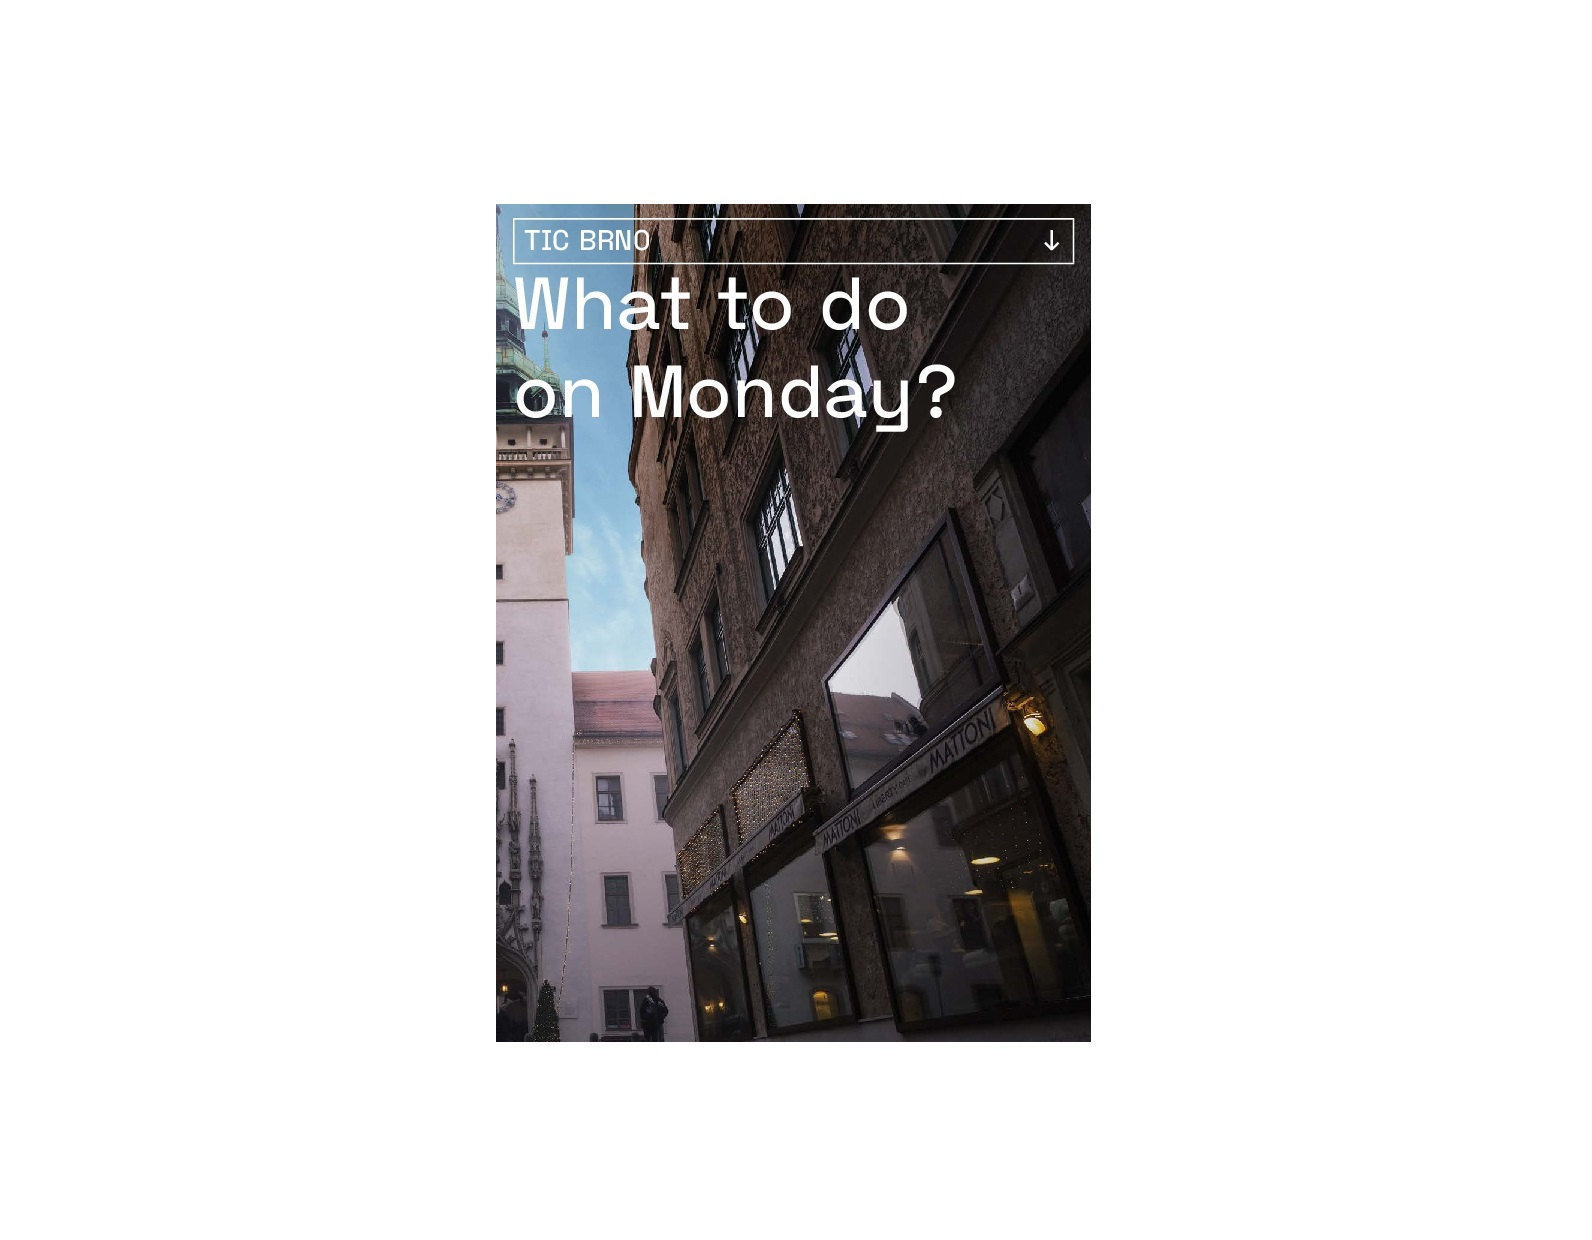 What to do on Monday?